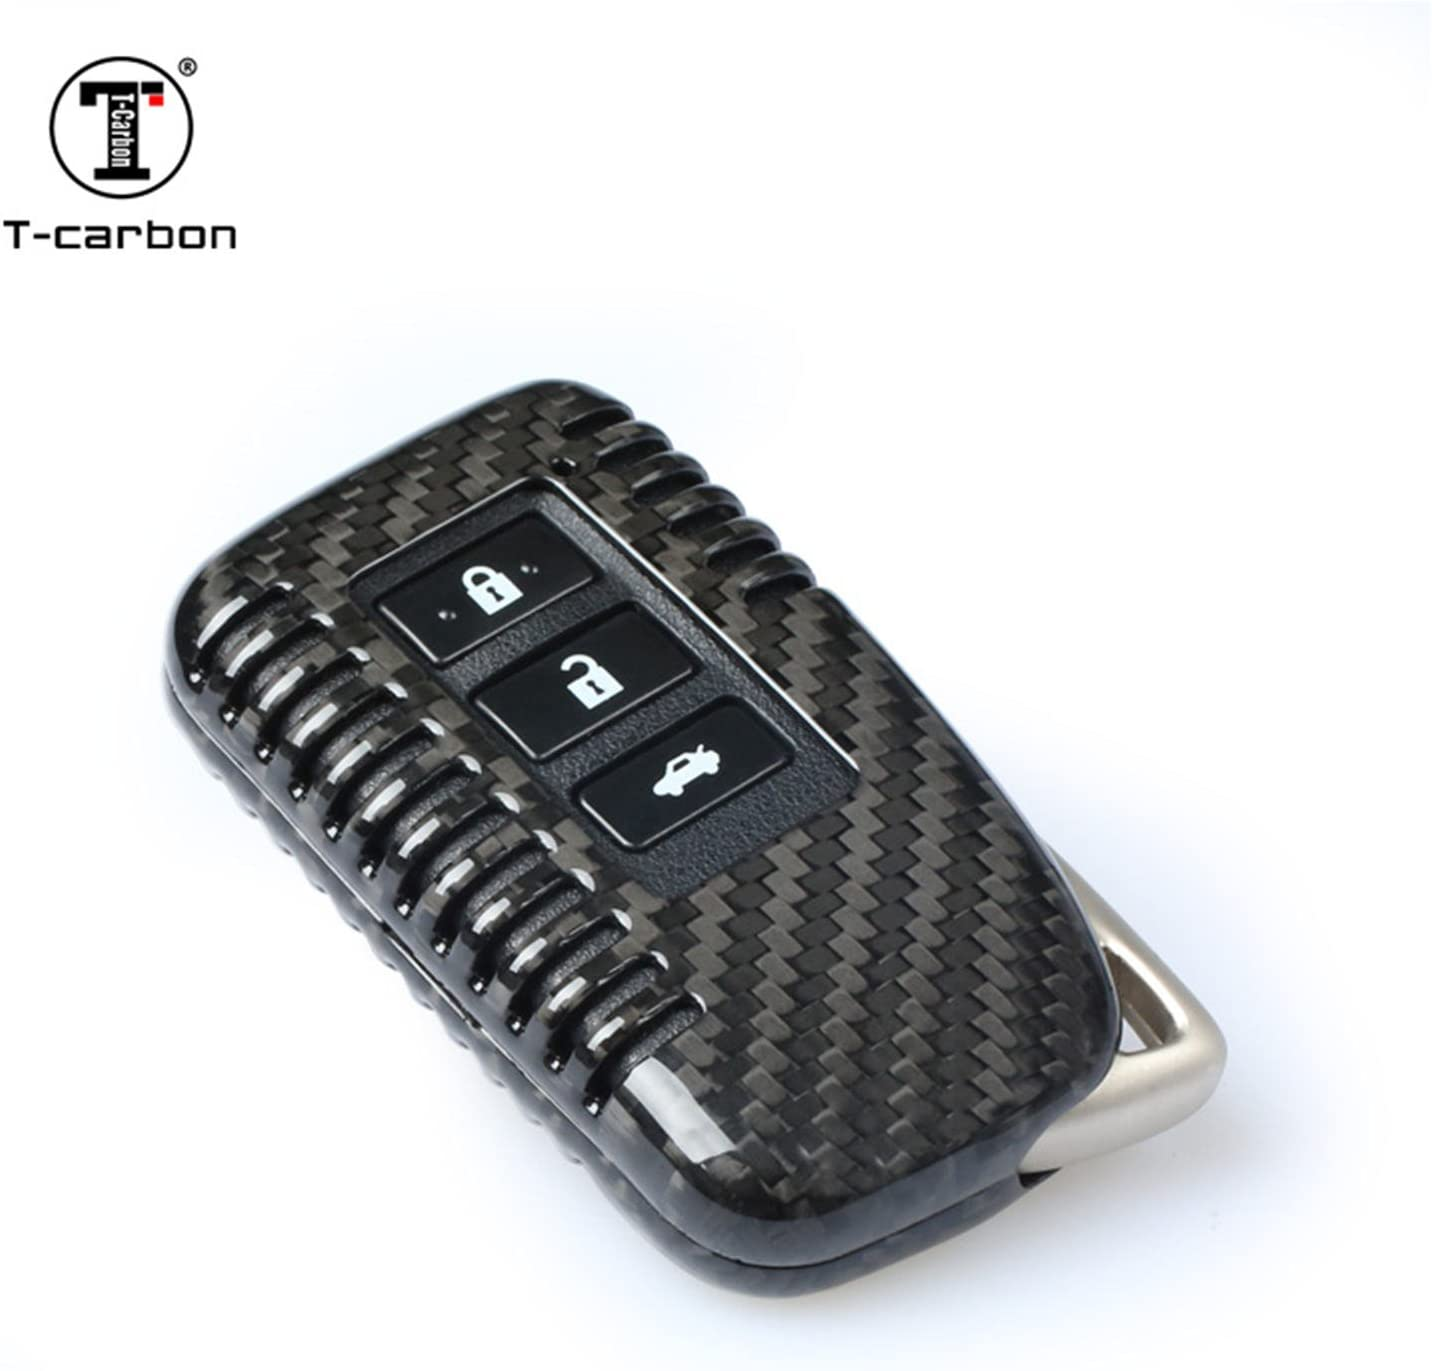 Light Weight Glossy Key Fob Protection Case Black 4 Buttons Fits Lexus NX RX LX is ES GS RC F Smart Keyless Start Stop Engine Car Key Carbon Fiber Key Fob Cover for Lexus Key Fob Remote Key